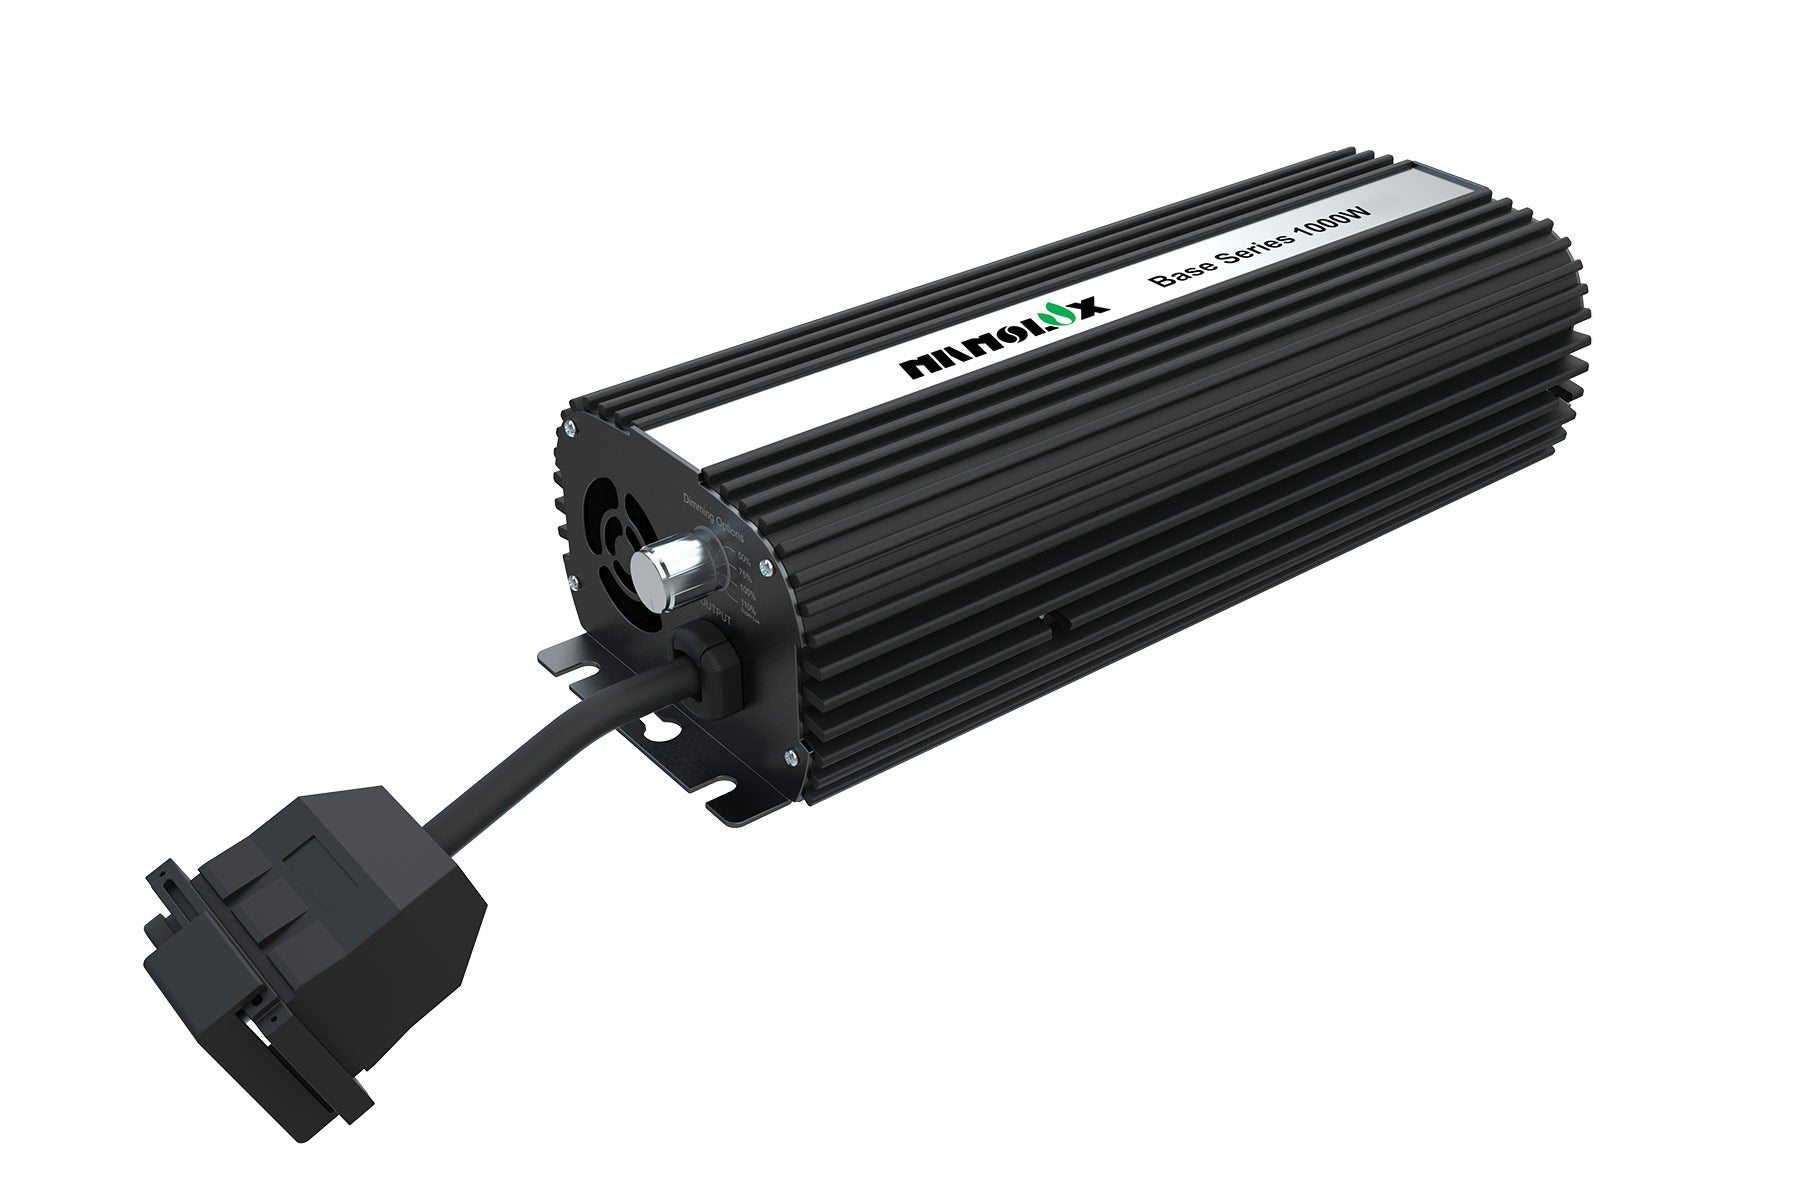 Base Series Digital Ballast 1000w 120/240v